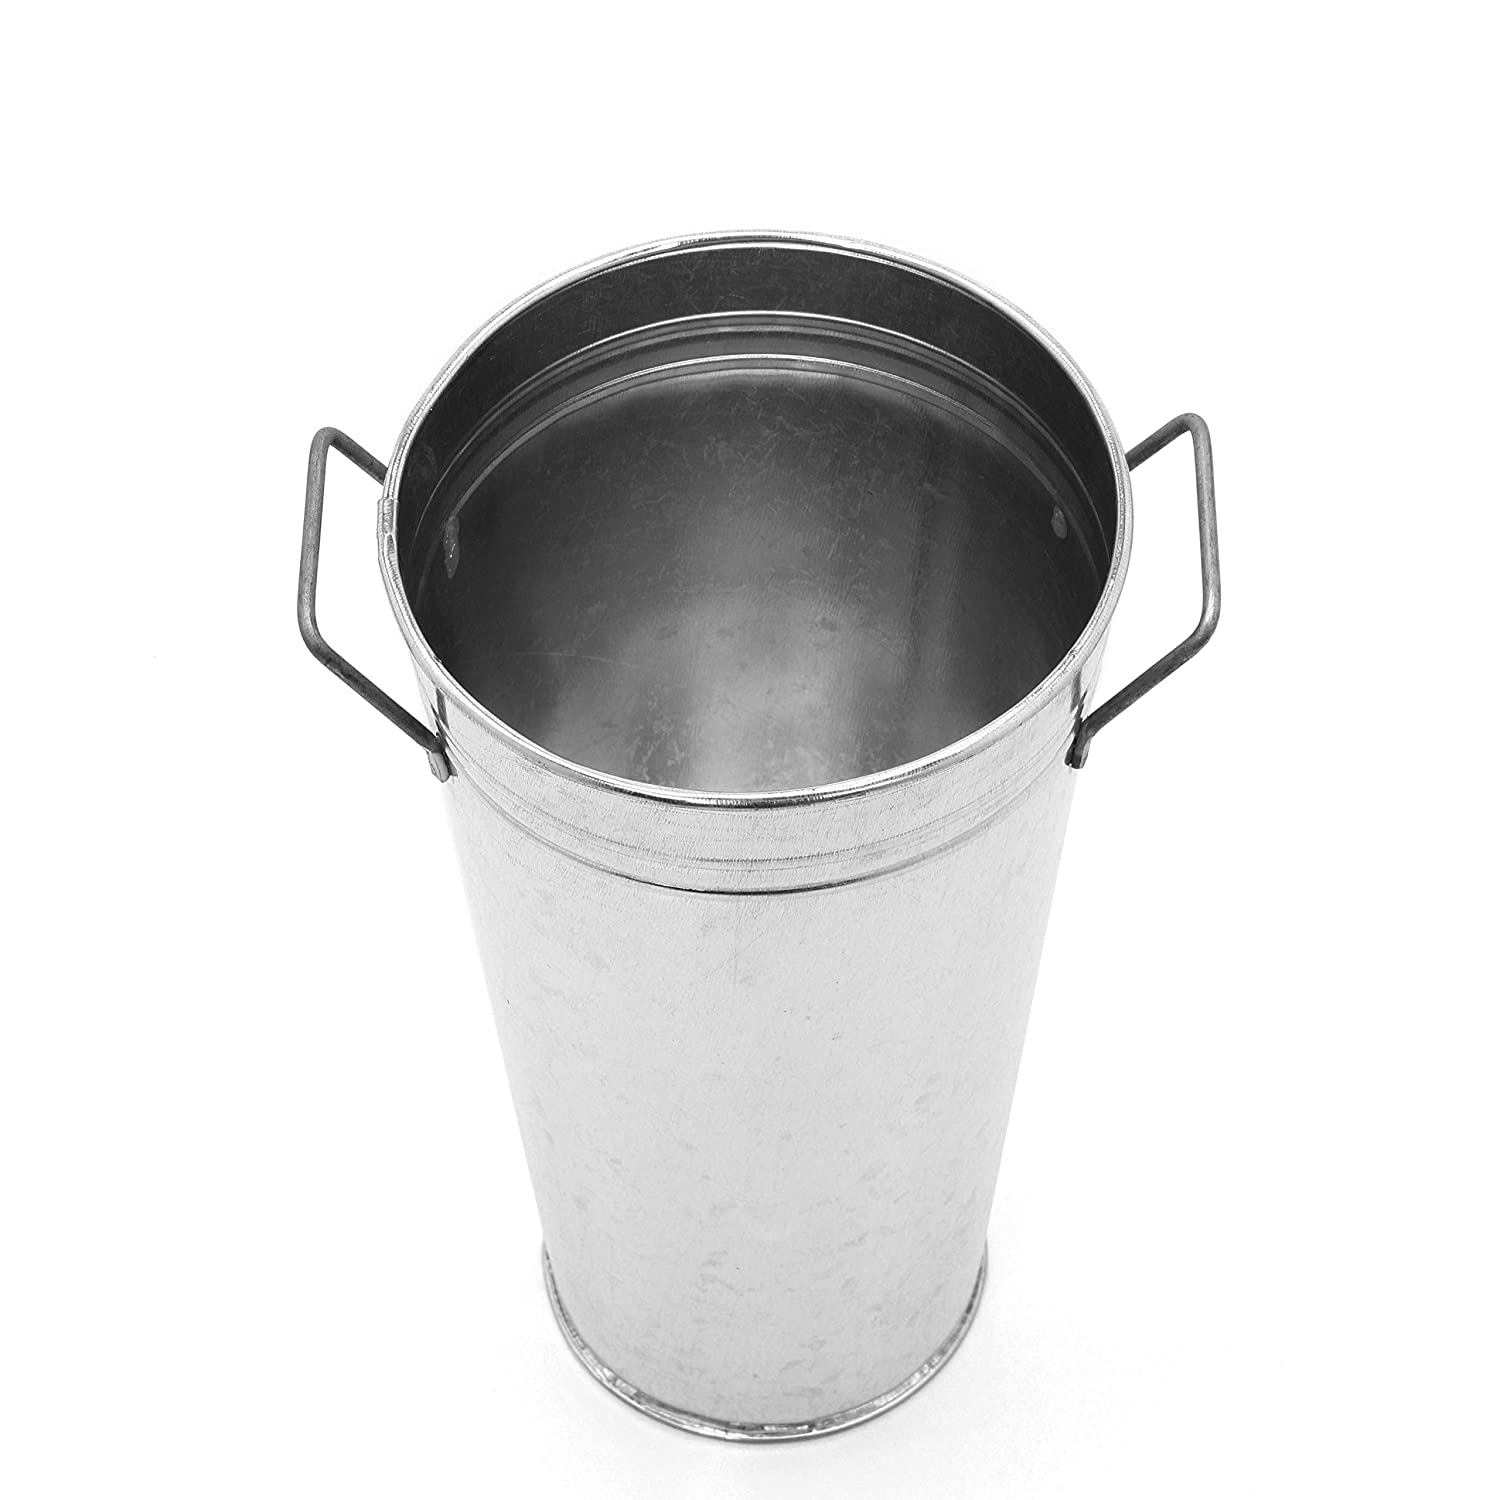 Spa and Aromatherapy Settings O5 HG Global FBA-G96733ON-1-EA for Weddings Gift Ideal for Dried Floral Arrangements at Home Hosley Set of 3 Galvanized French Bucket//Vase with Handles- 9 High